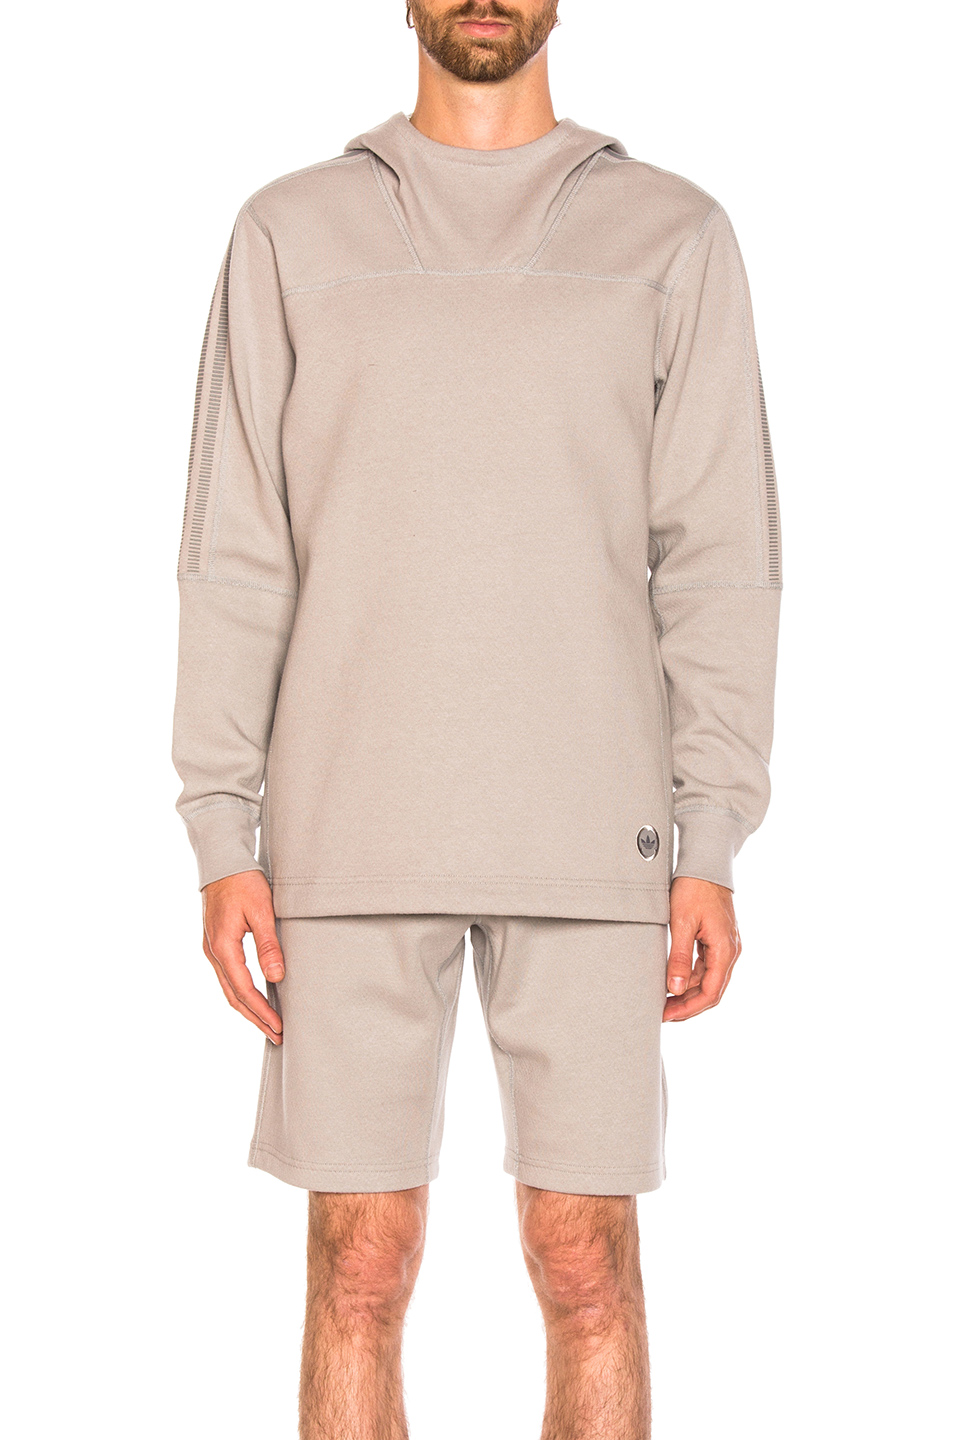 adidas by wings + horns Bonded Linen Hoodie in Gray